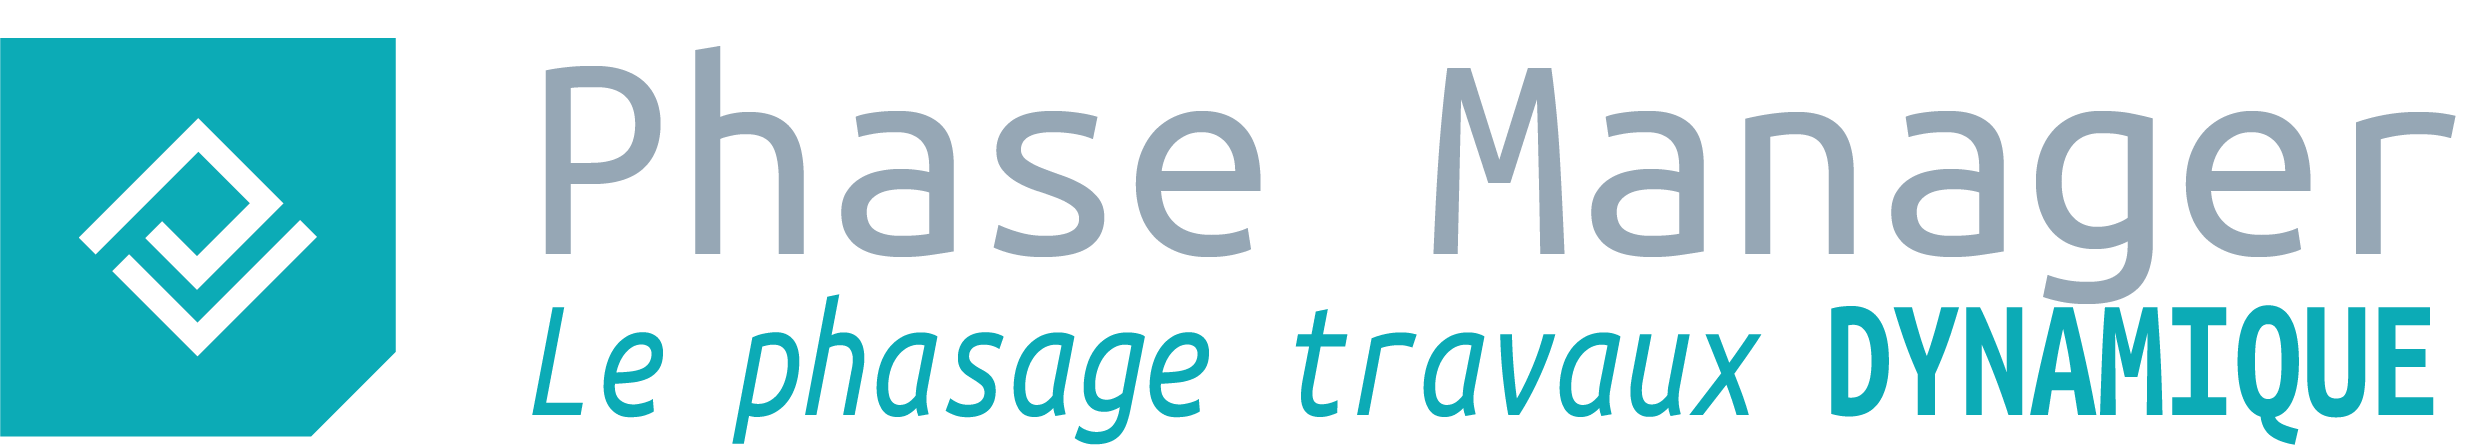 pl_phase manager-logo - FR